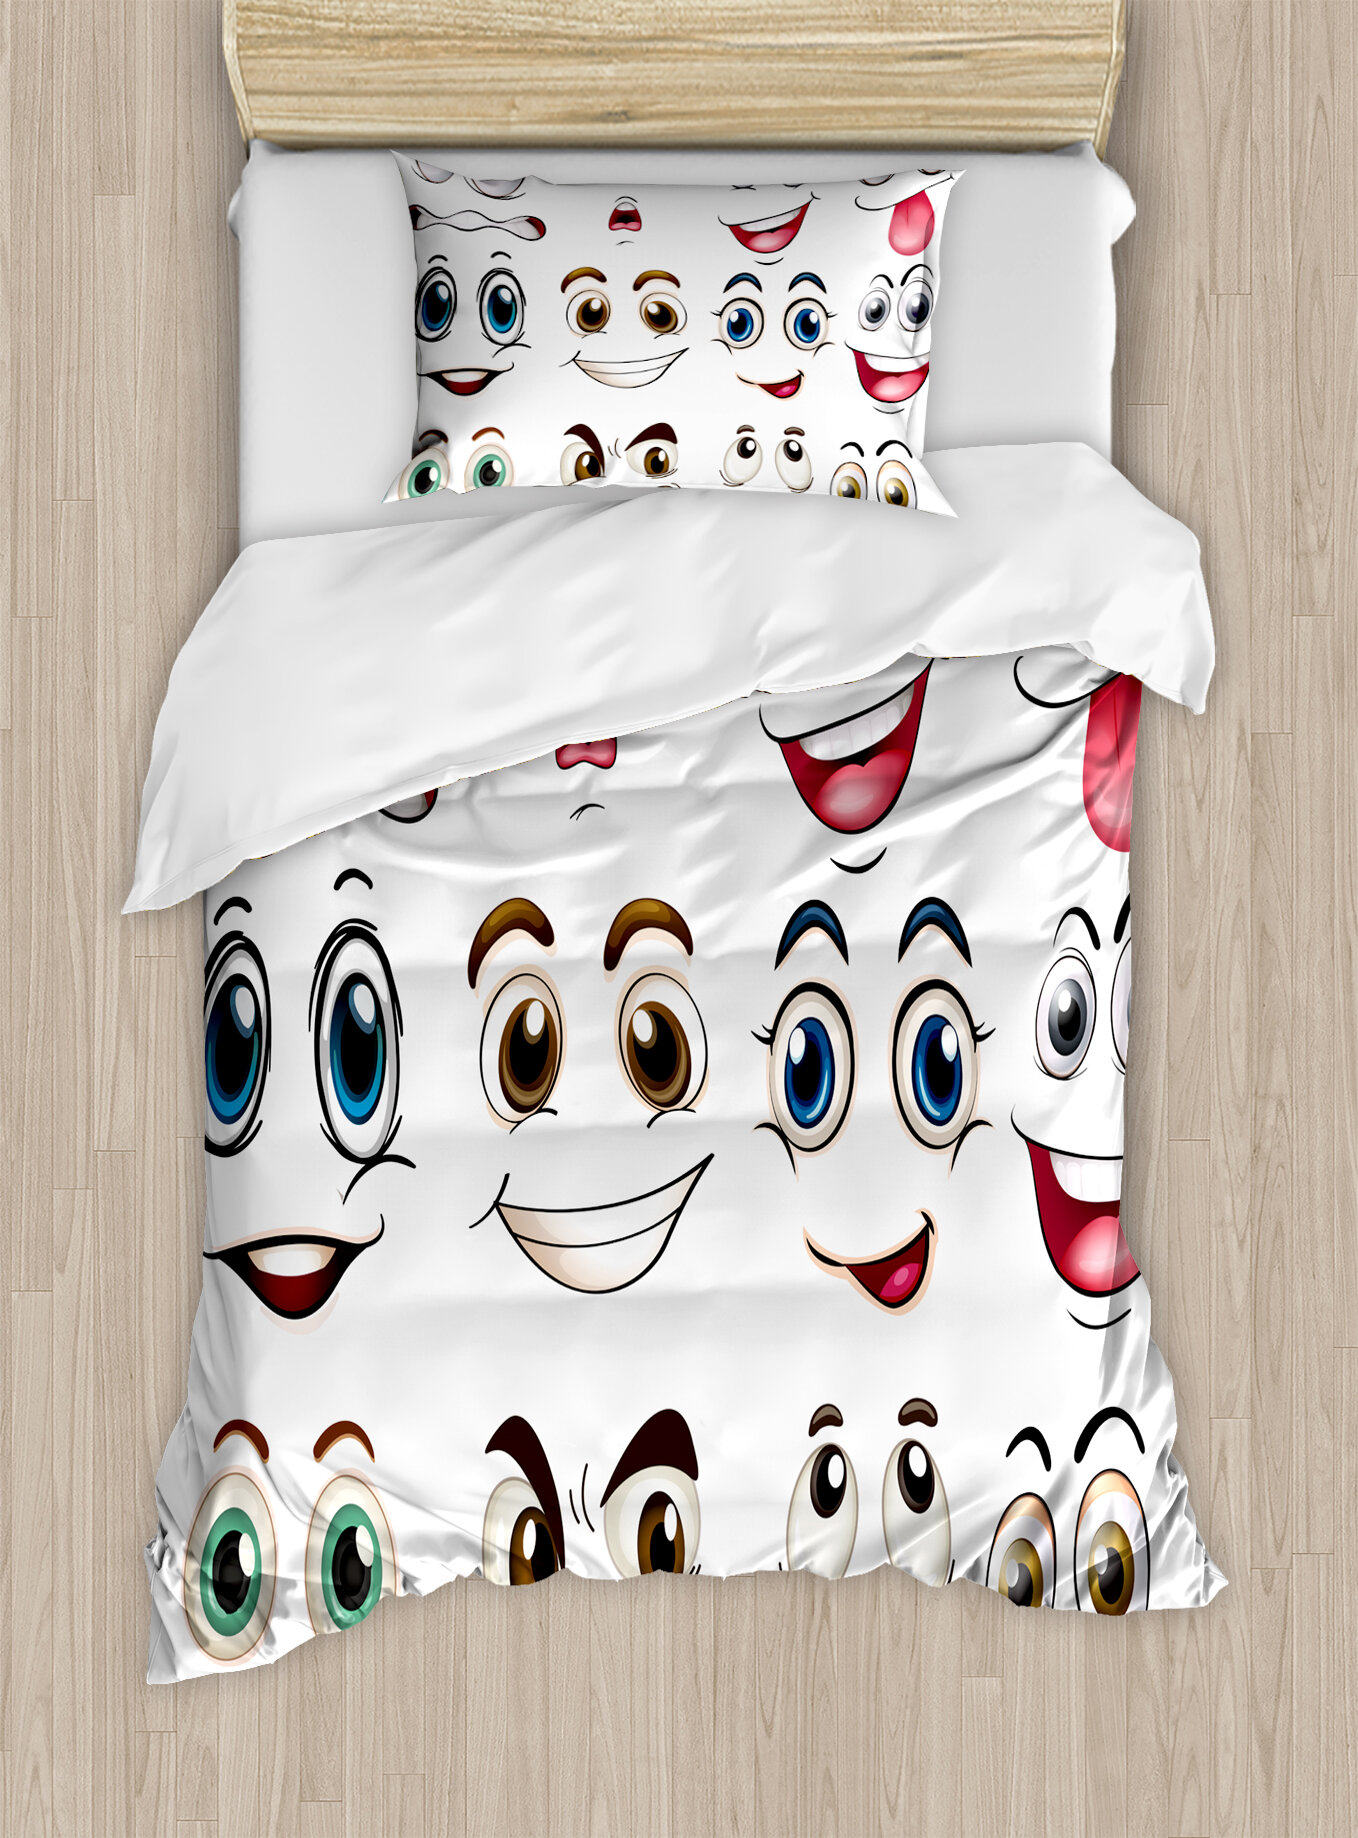 East Urban Home Cartoon Smiley Face Emoji Hand Drawing Image With Positive  Face Expressions Duvet Set | Wayfair